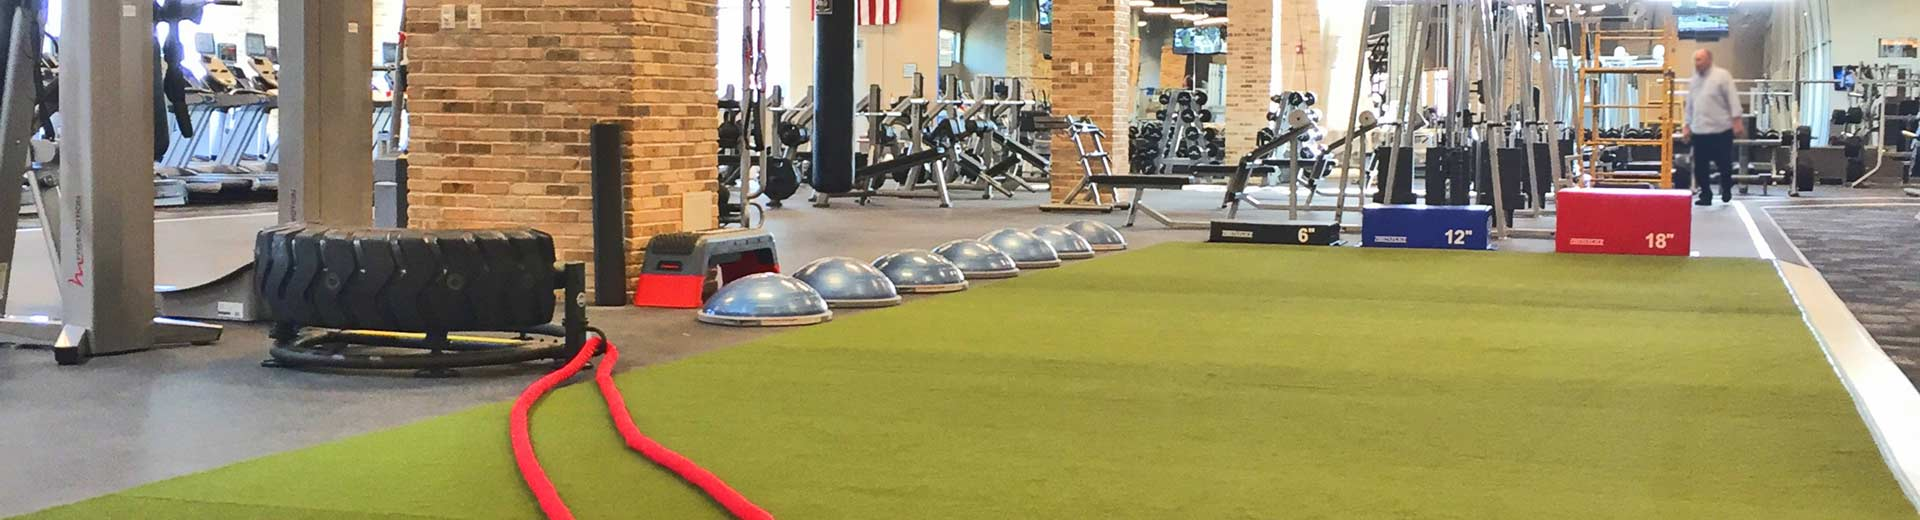 bronx new york gym amenities | xsport fitness